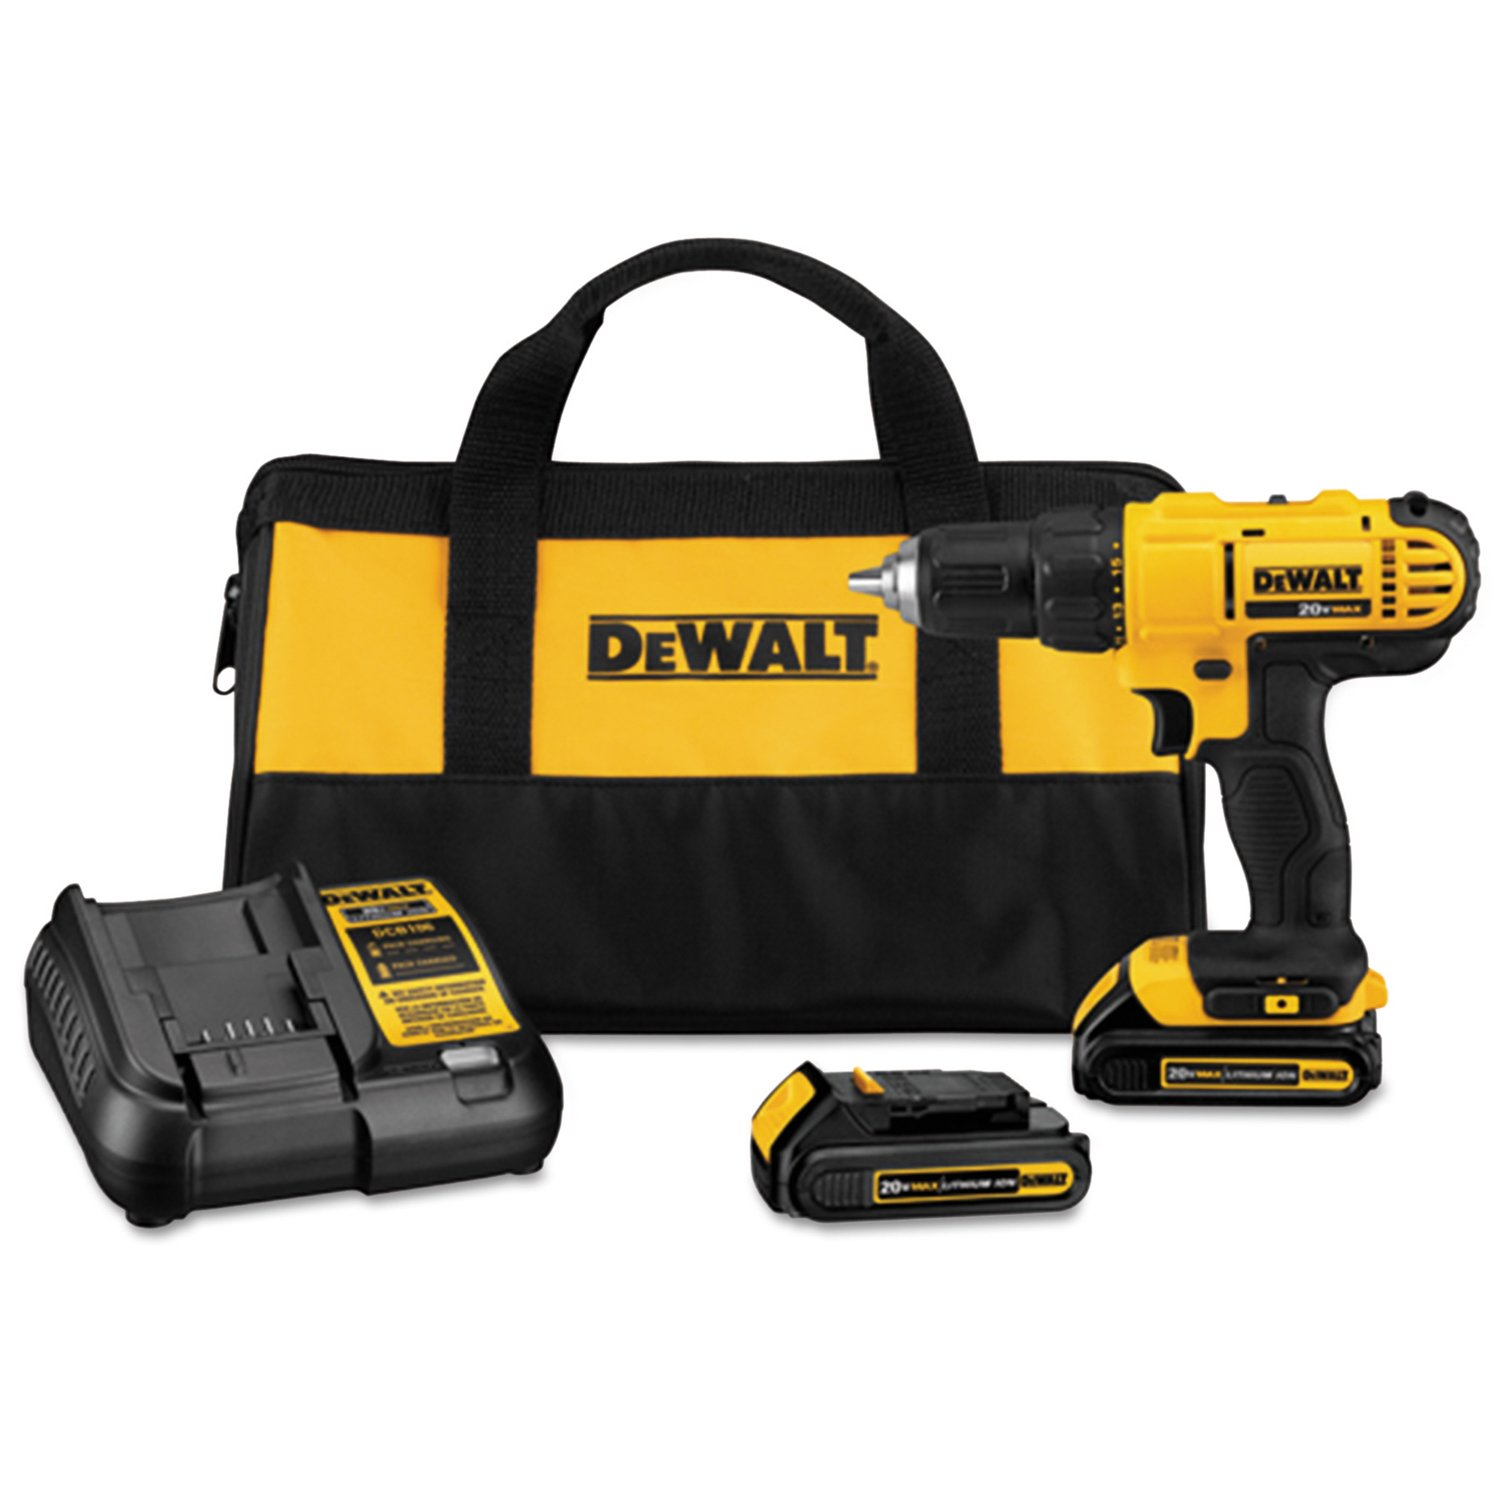 DEWALT DCD771C2 Review